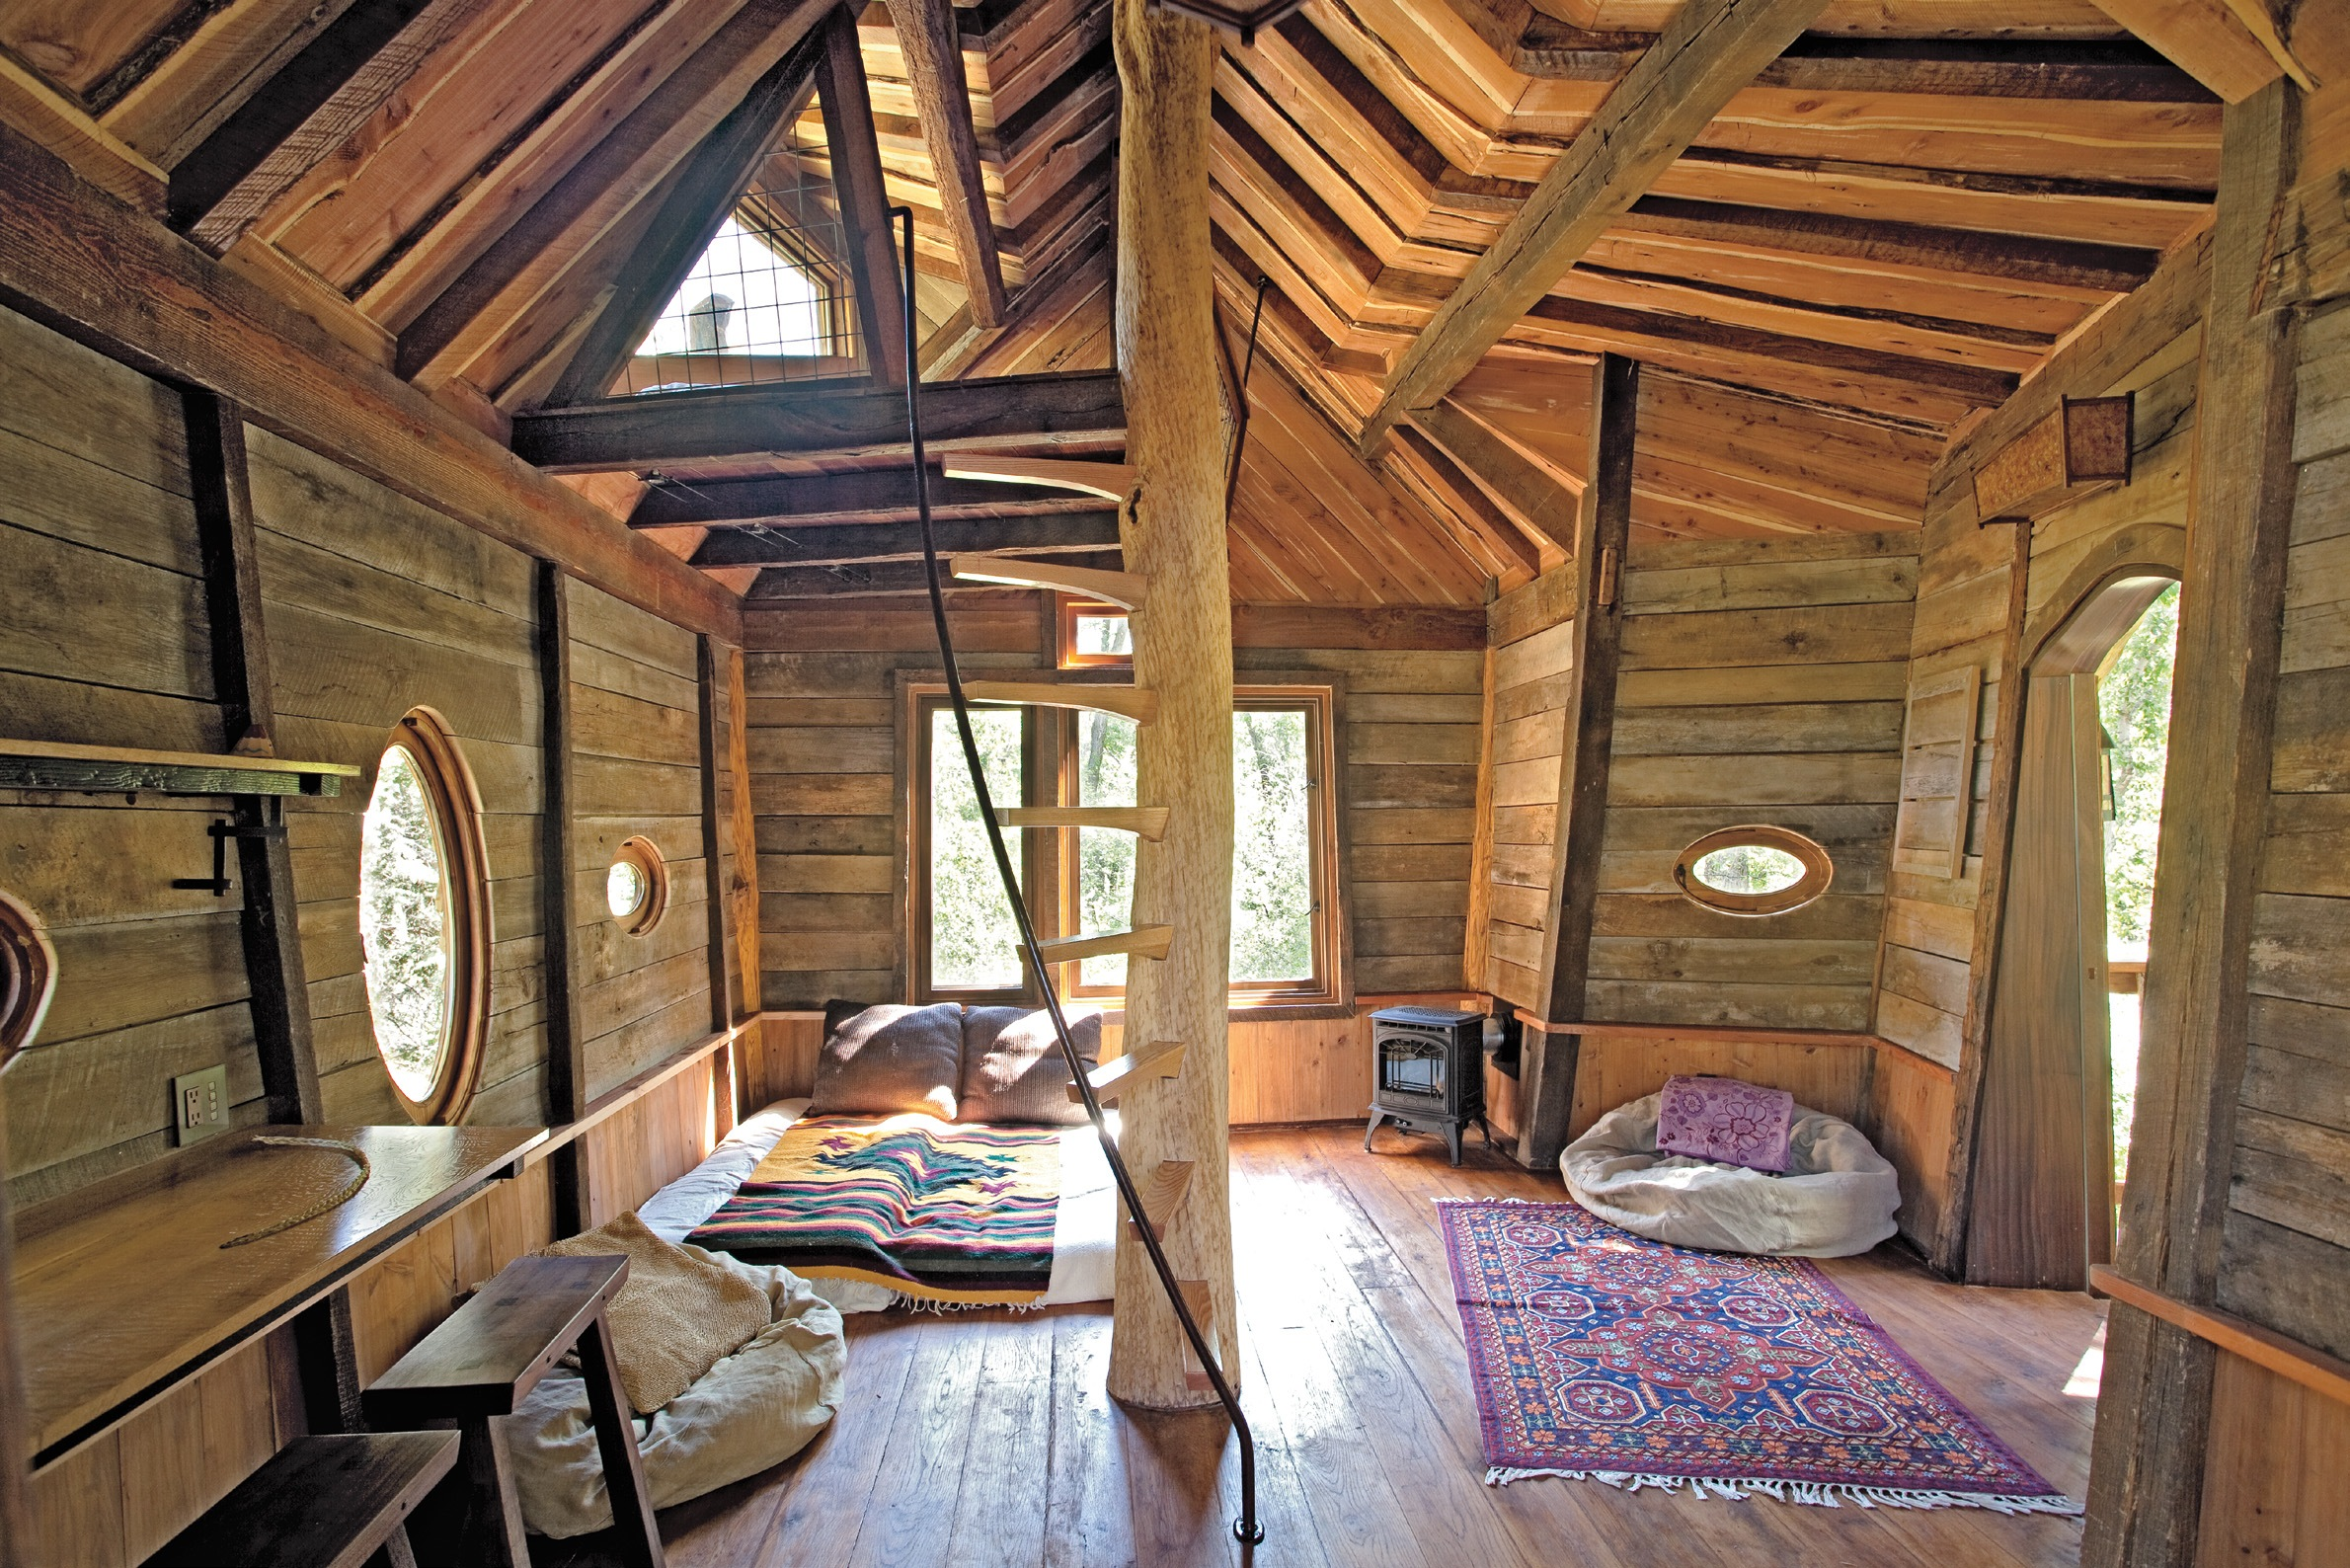 Th 152 153 image for Tiny house architects